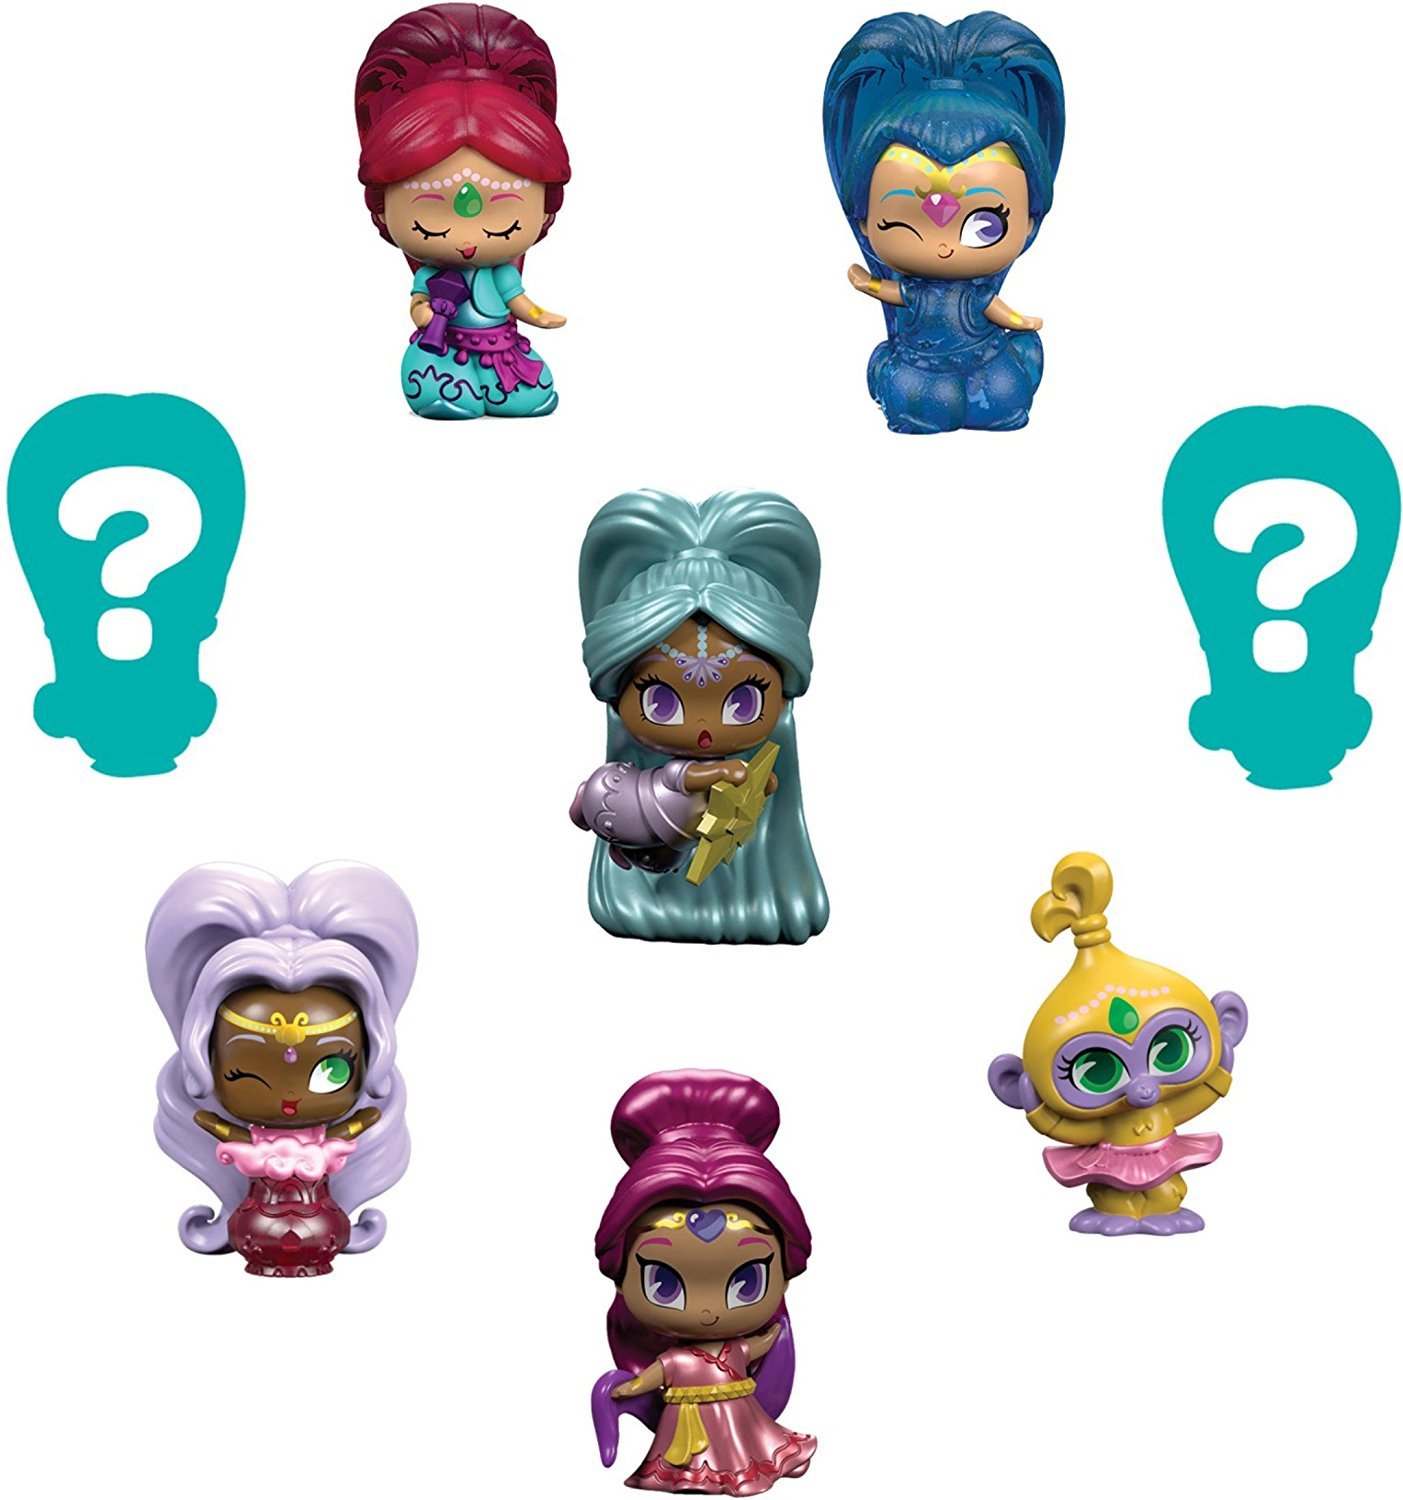 Fisher Price Nickelodeon Shimmer & Shine Teenie Genies Genie Toy (8 Pack), #3, �WELCOME to... by